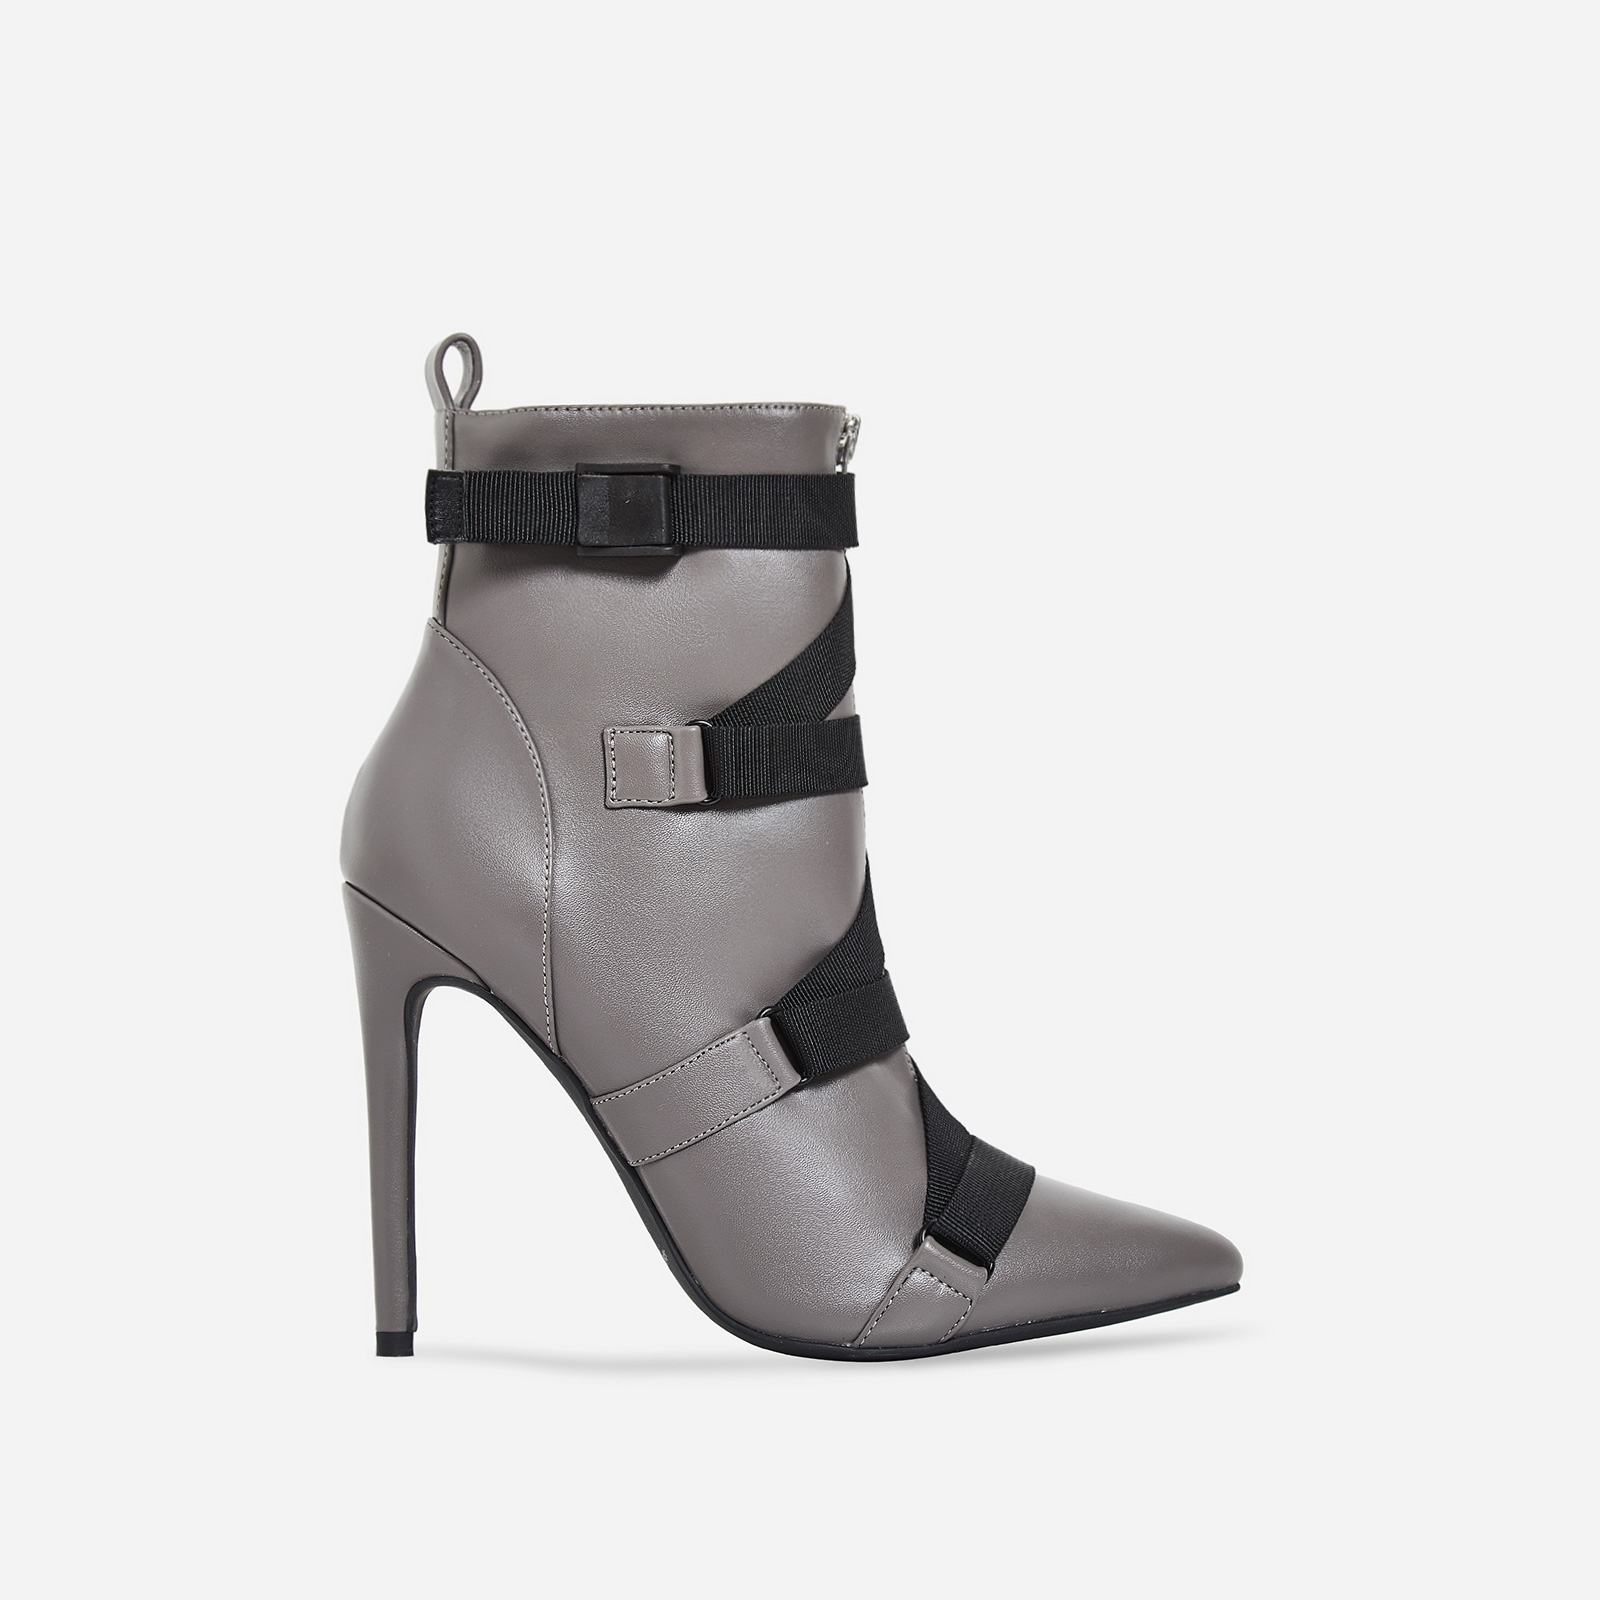 349c59e9ff052 Halle Strap Detail Ankle Boot In Grey Faux Leather | EGO